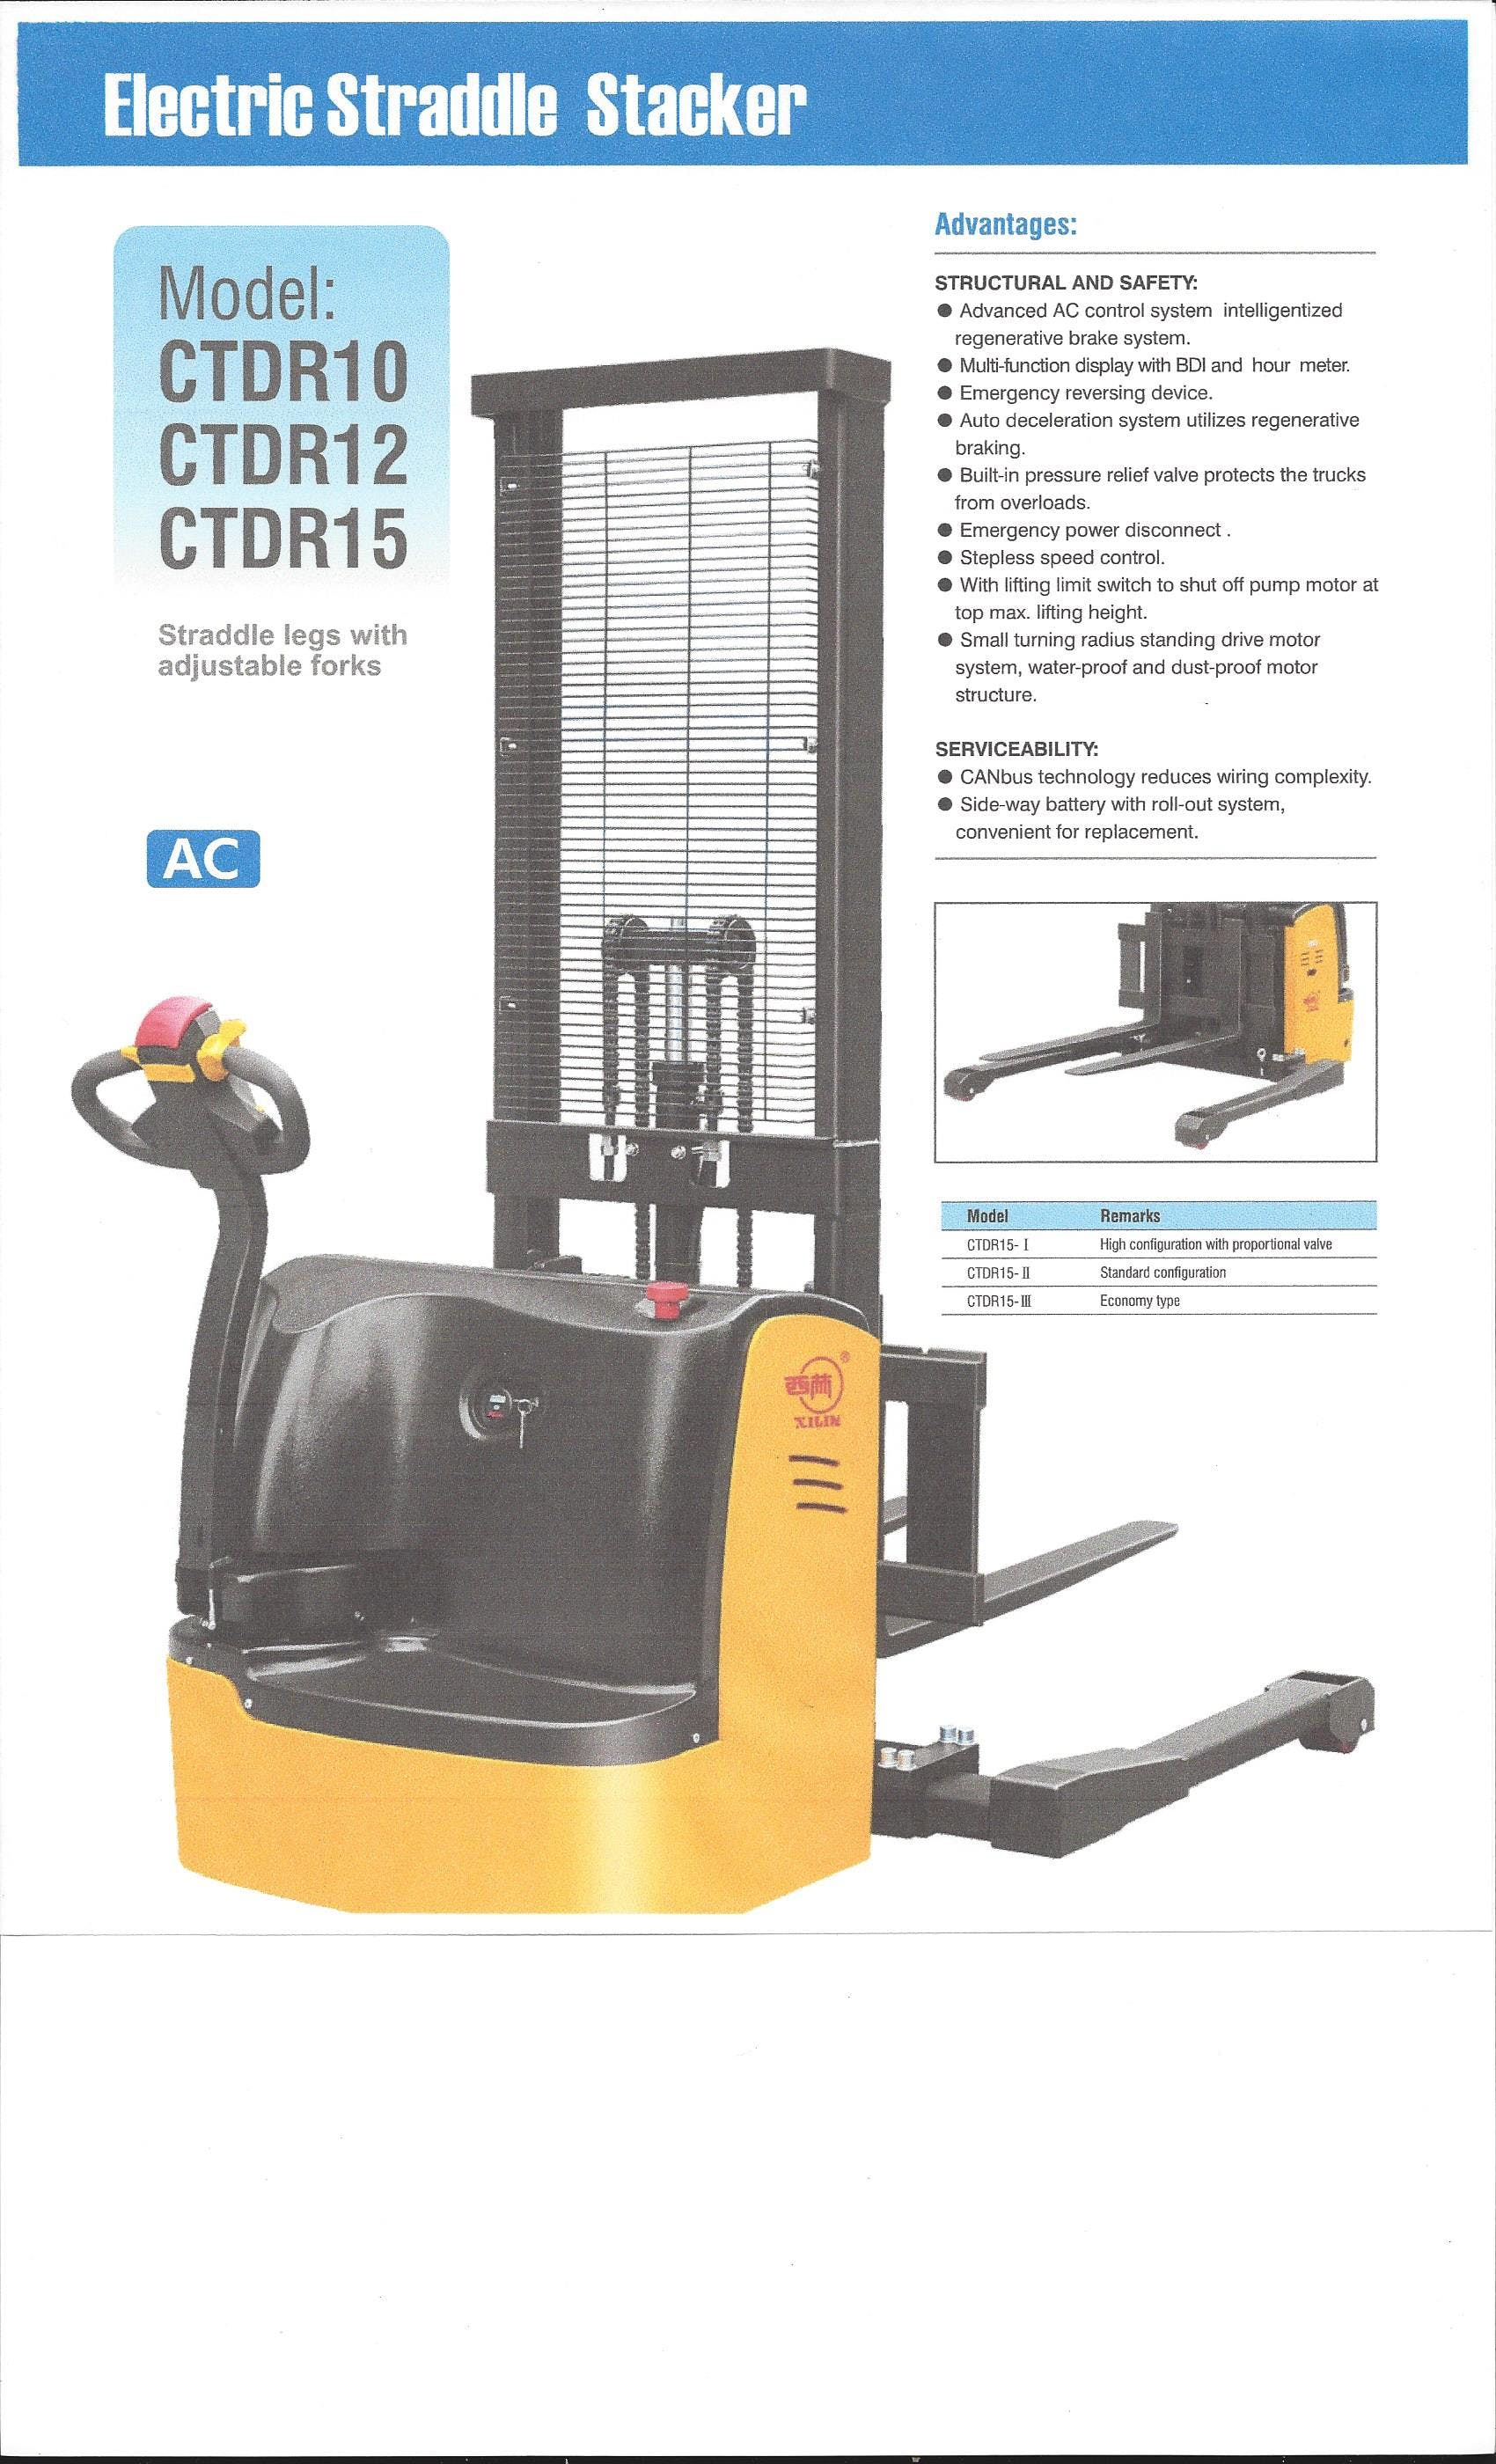 CTDR10/12/15 Pallet jack sold by CHERY FORKLIFT(NEW YORK) INC